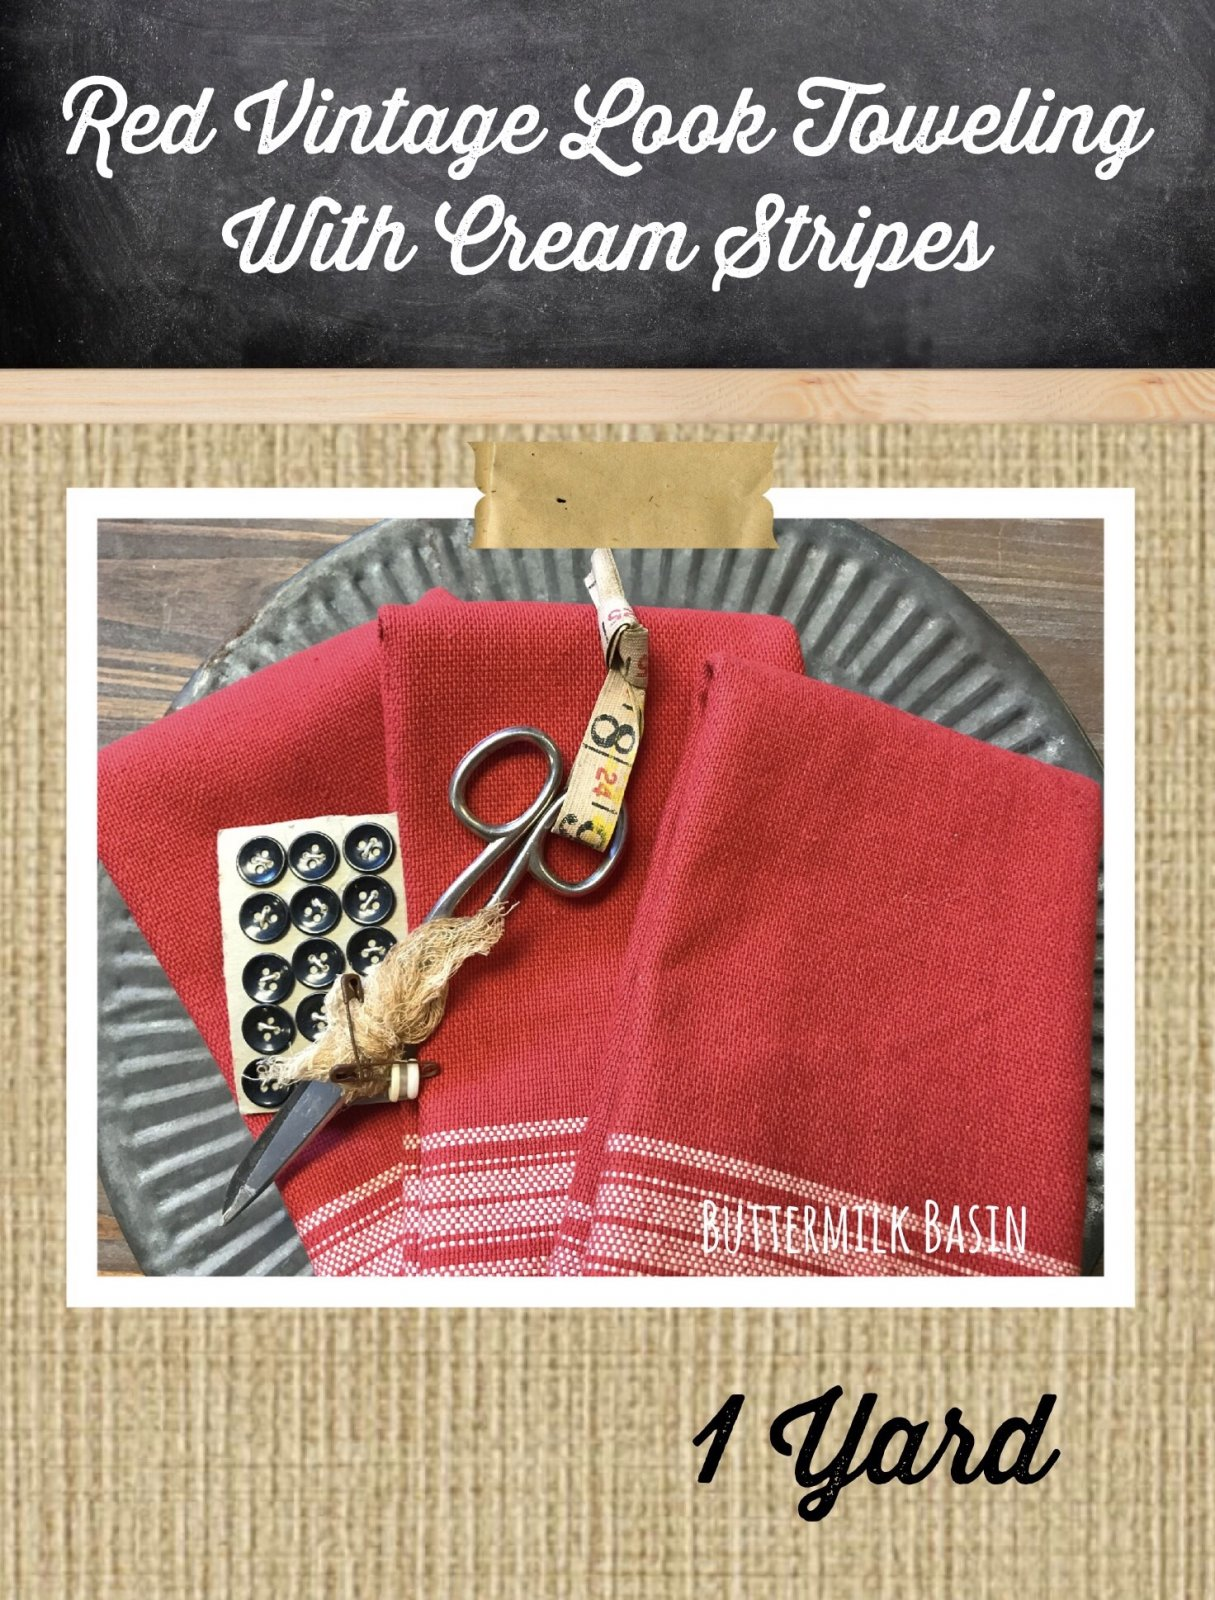 Red Vintage Look Toweling with Cream Stripes